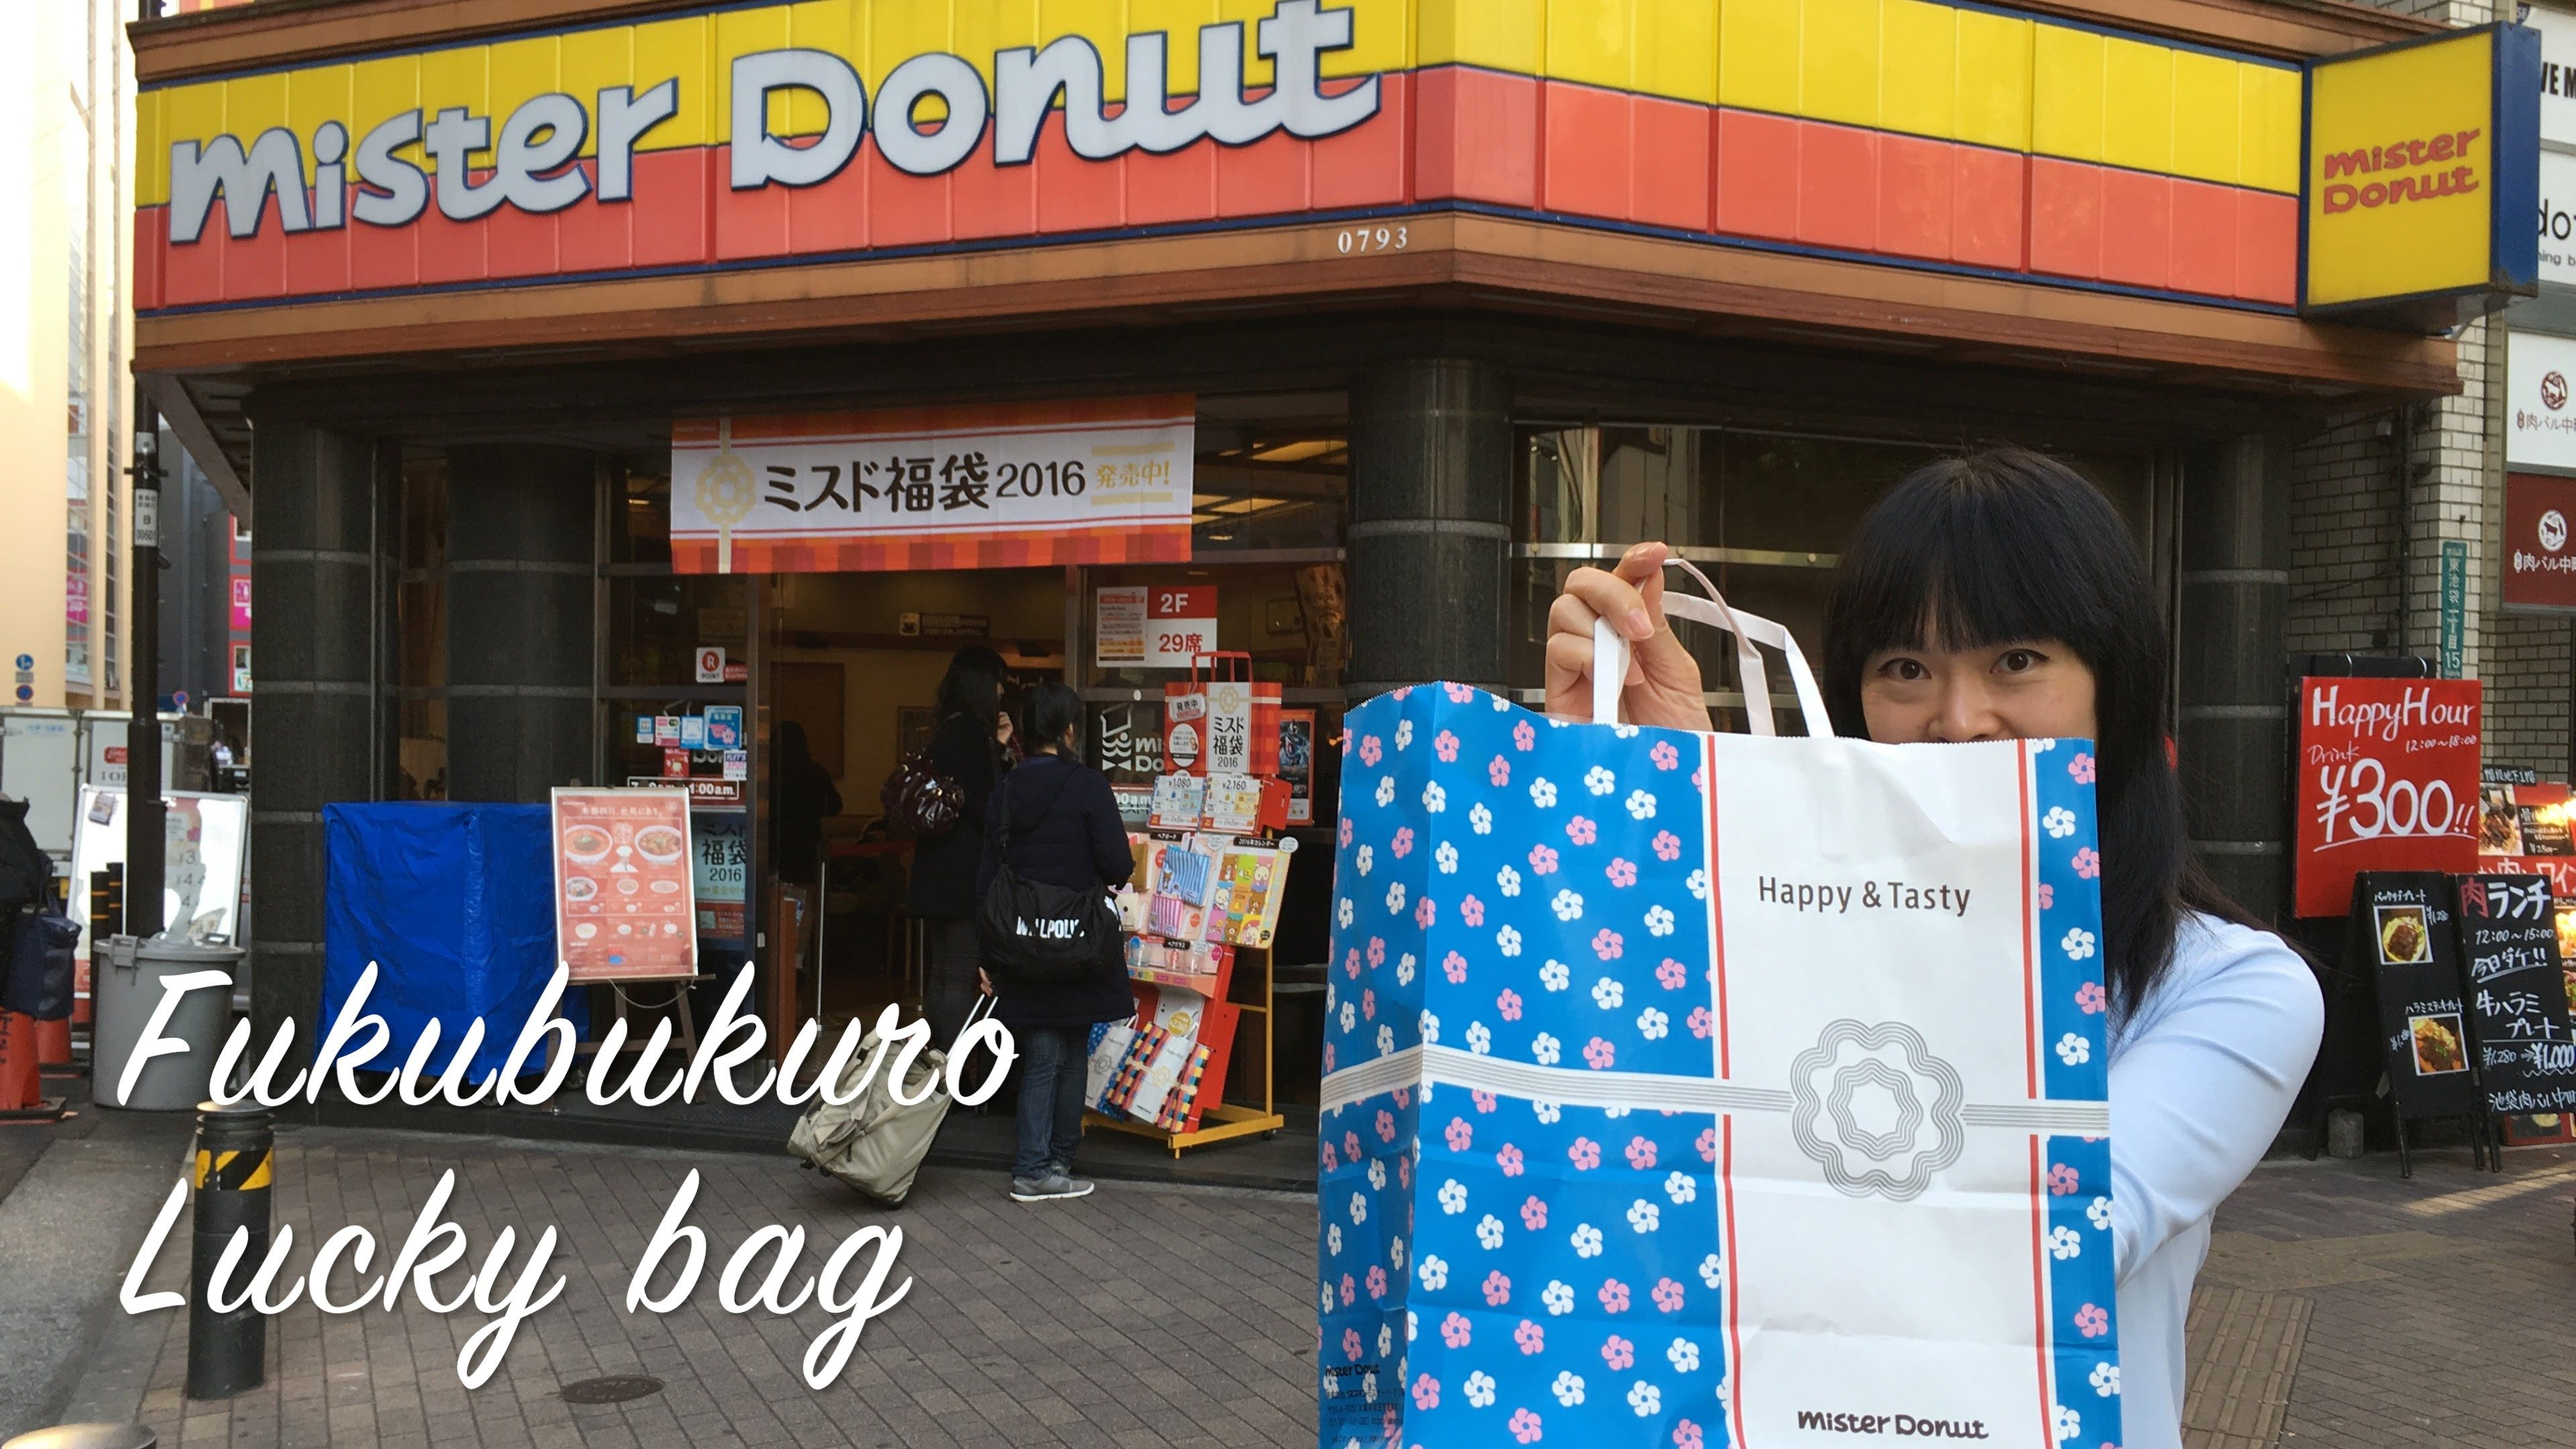 [TRAVELOG Japon #8] [Lucky bag de Nouvel an] Mister donut Fukubukuro 2016 - from #rosalys at www.rosalys.net - work licensed under Creative Commons Attribution-Noncommercial